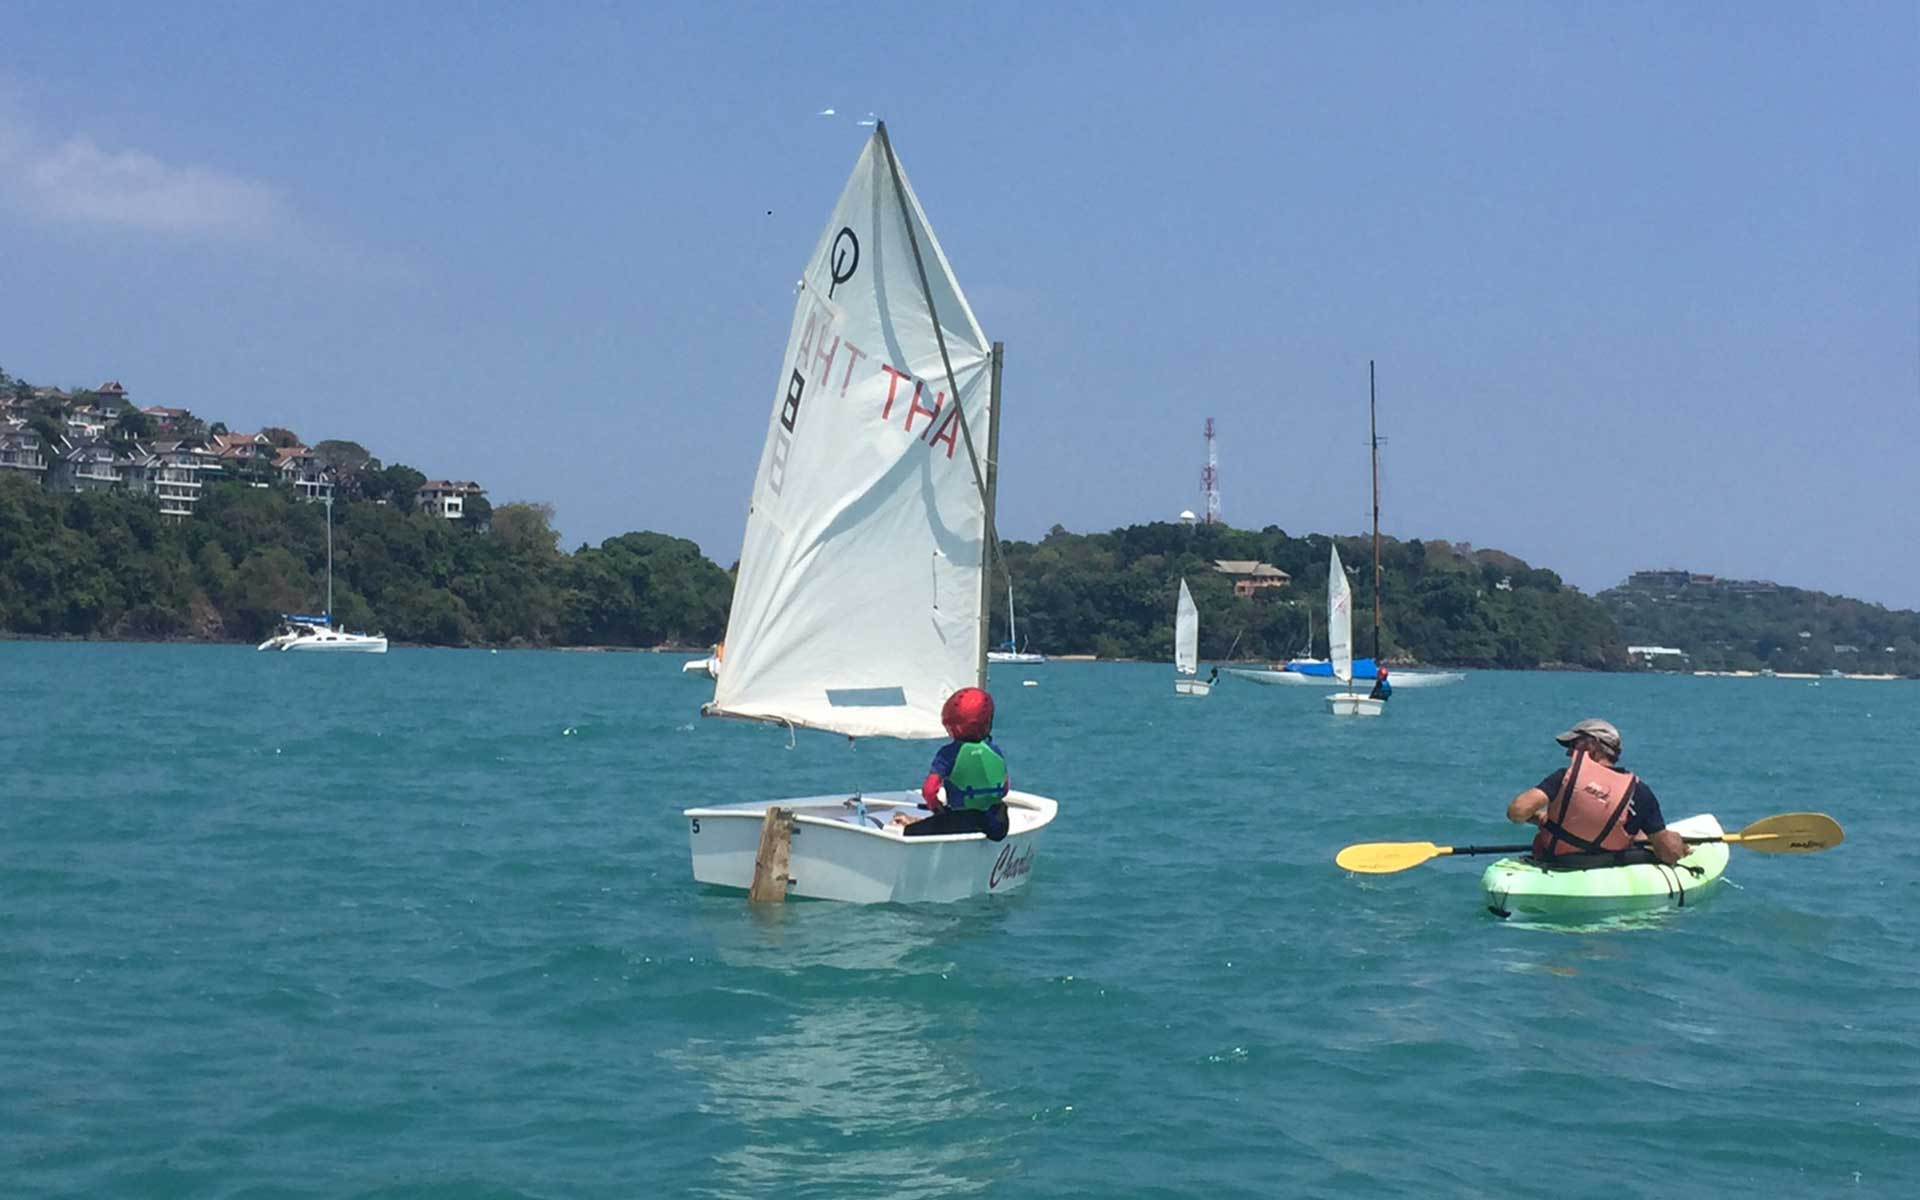 School outing dinghy sailing